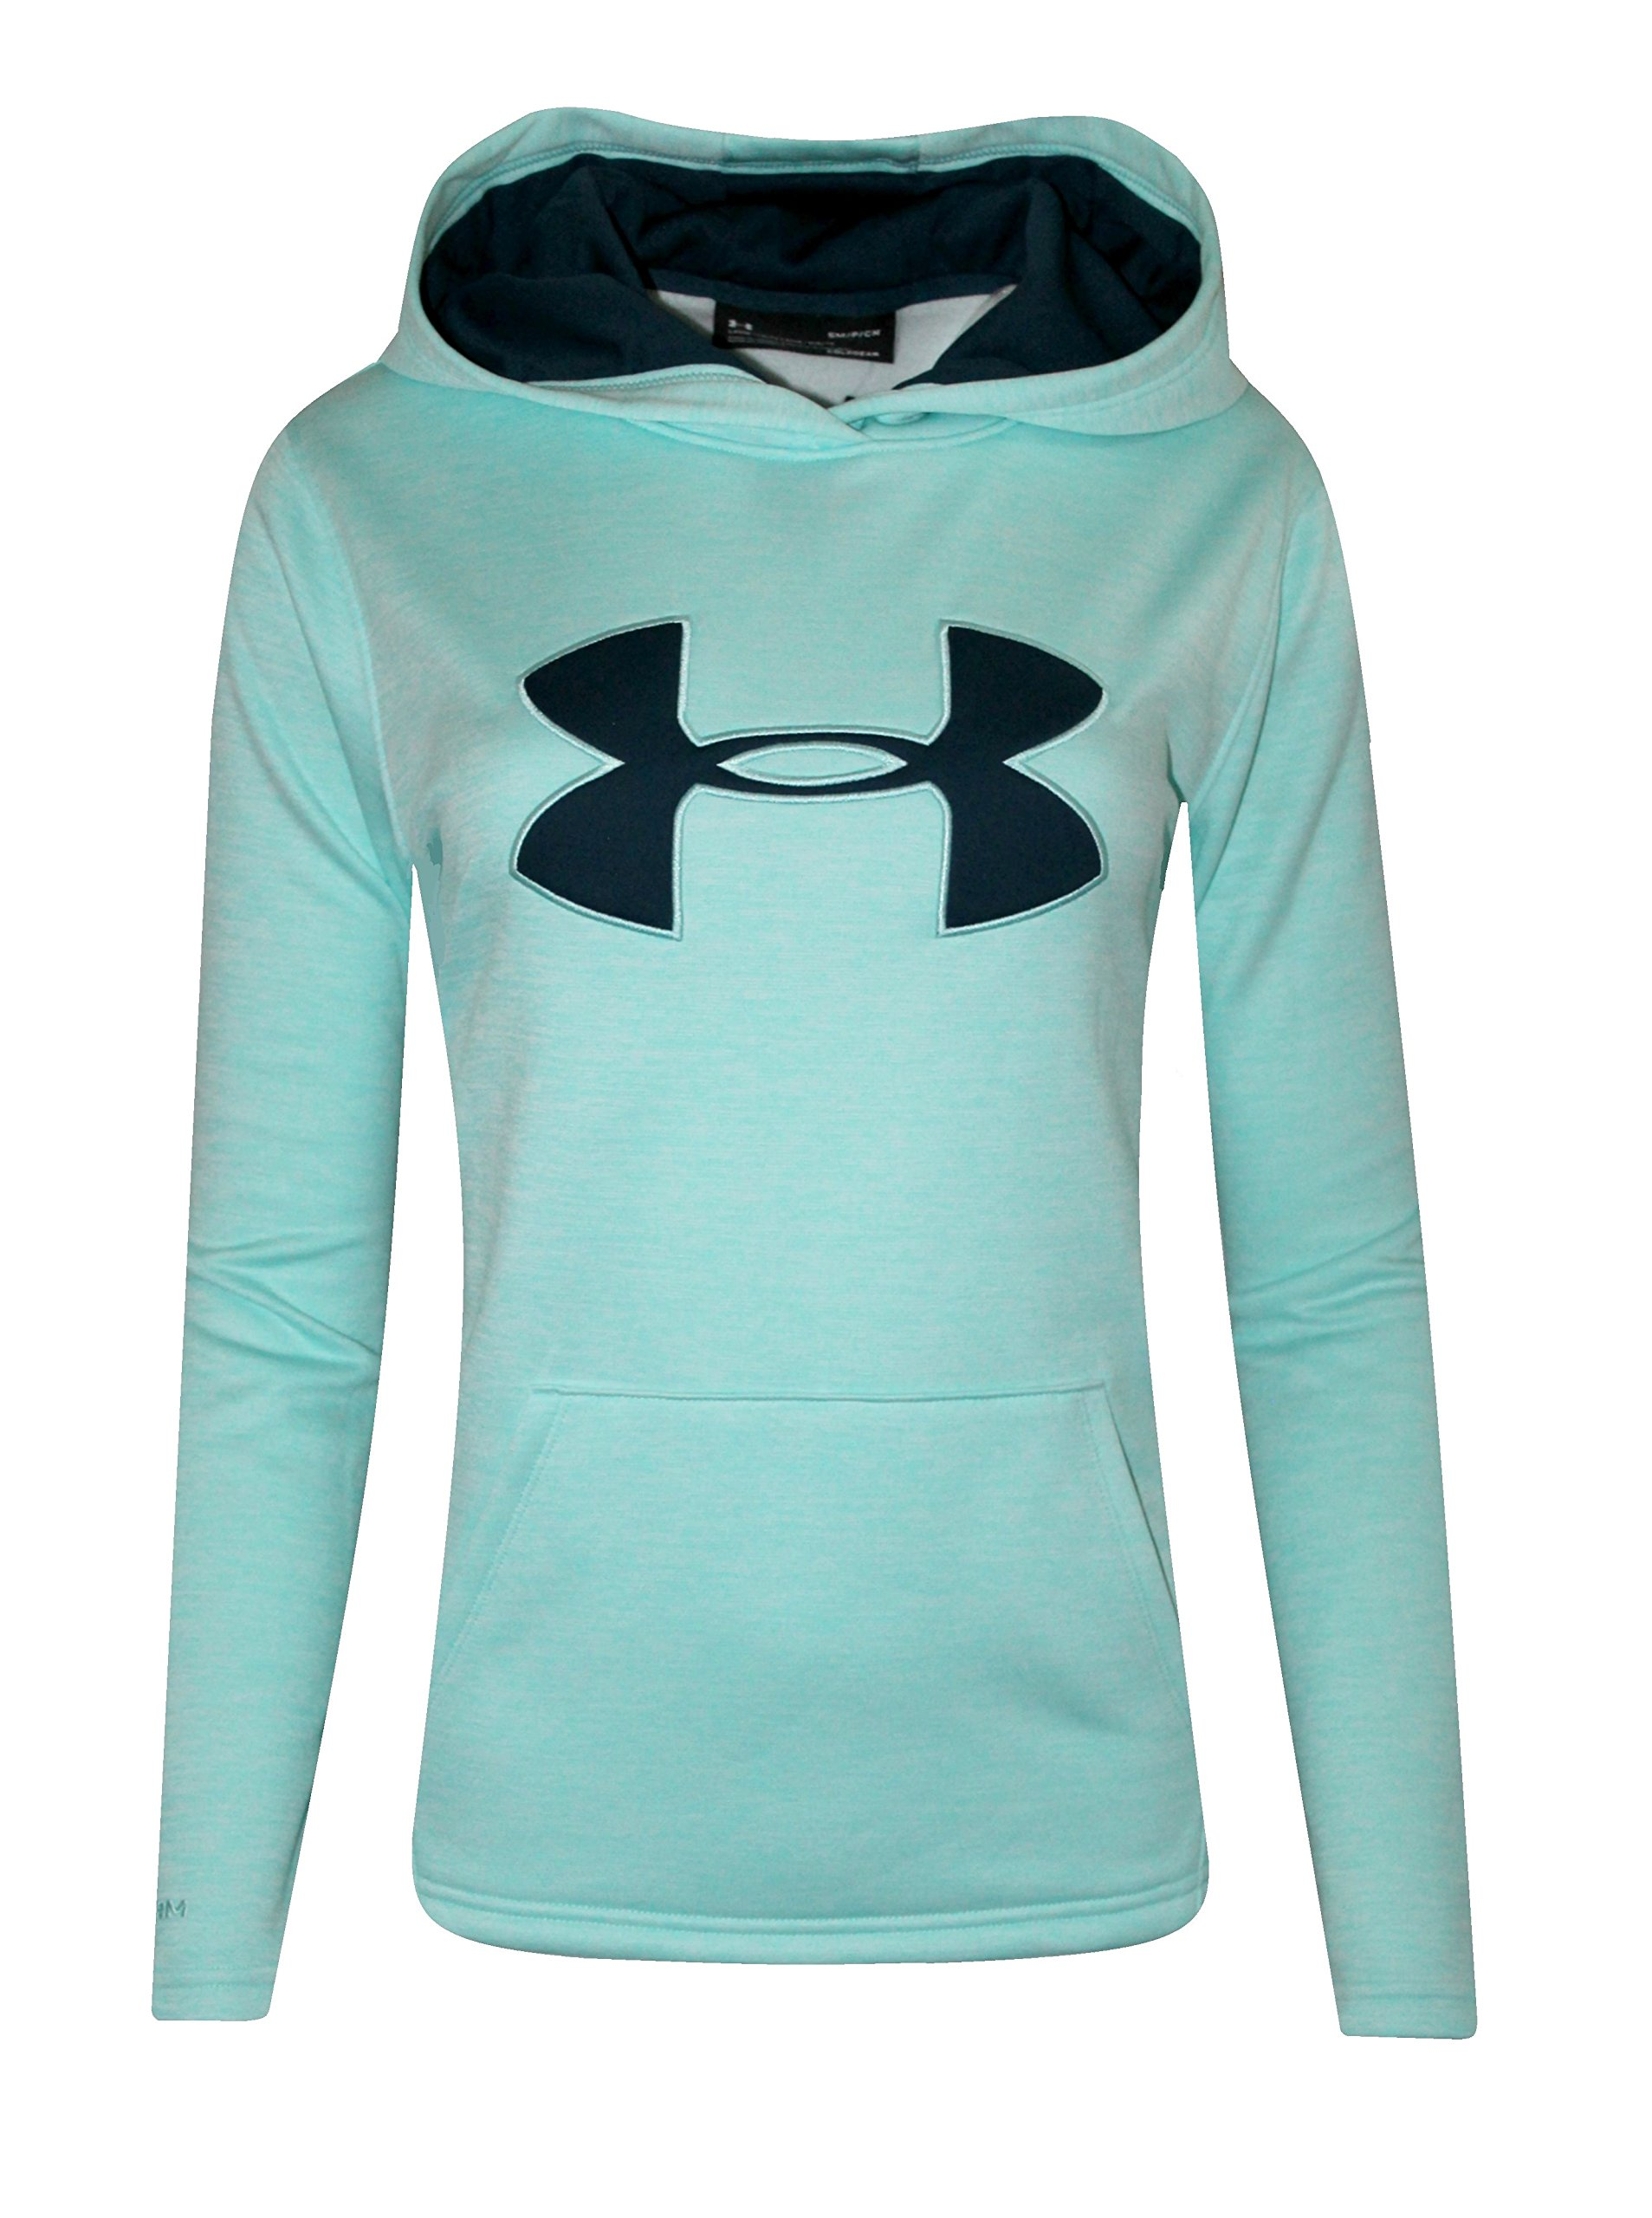 Under Armour Womens UA Storm Big Logo Hoodie HEATHER Athletic Shirt (L, Blue Infinity)